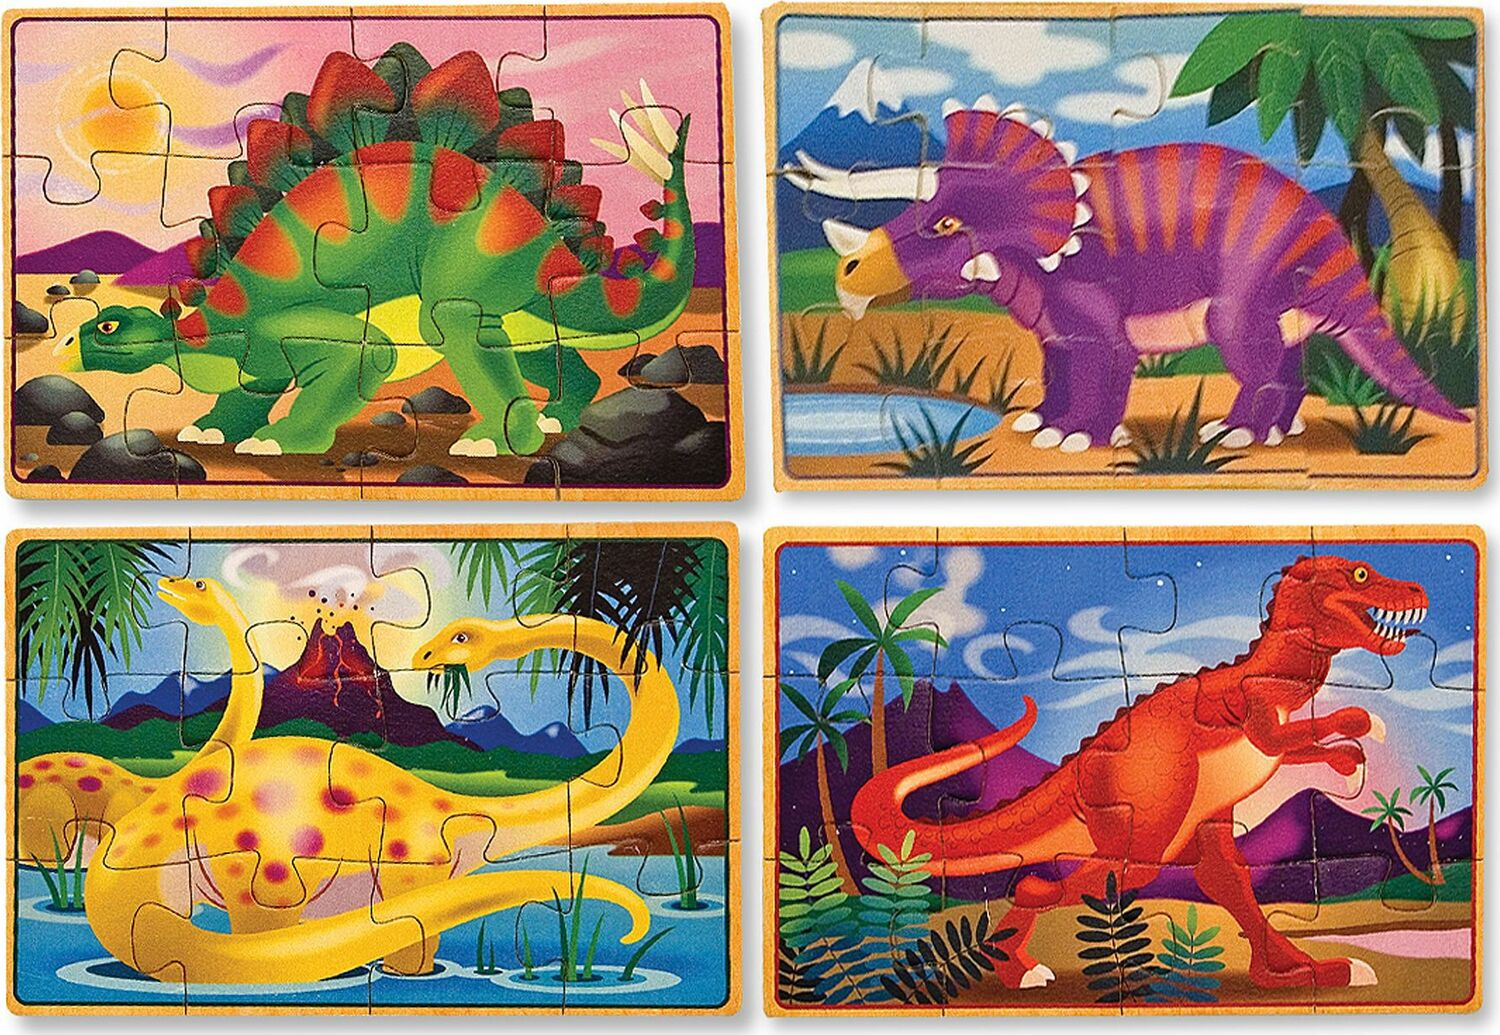 Dinosaurs Mdf Toy Box Childrens Storage Toys Games Books: Dinosaurs Puzzles In A Box